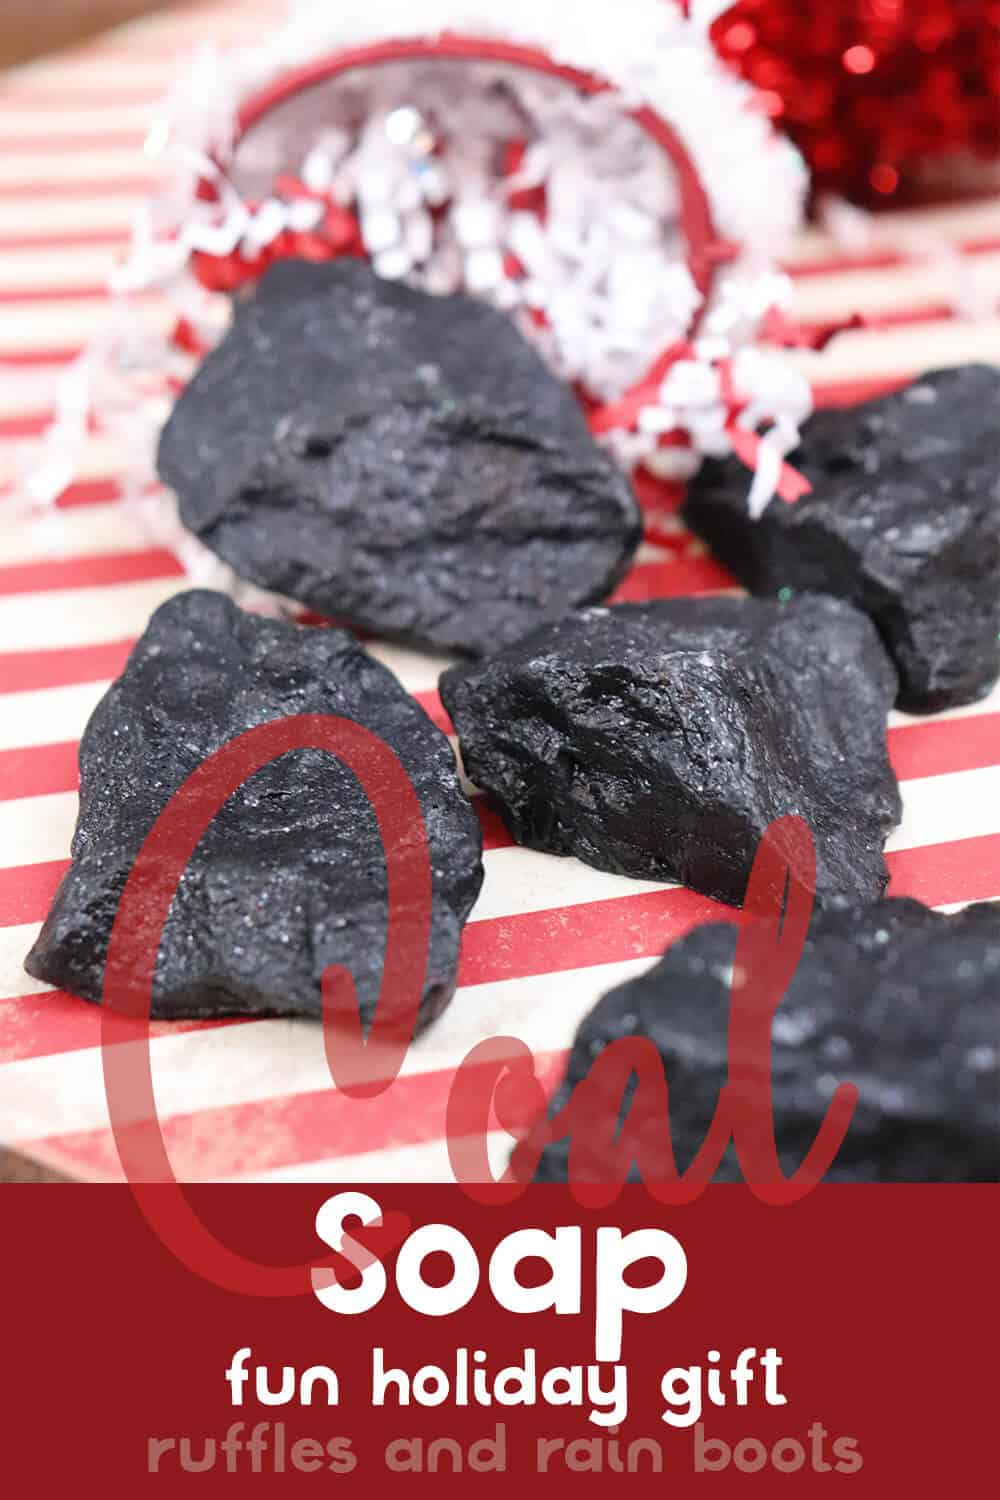 several piece of coal soaps on a red and white background with text which reads coal soap fun holiday gift